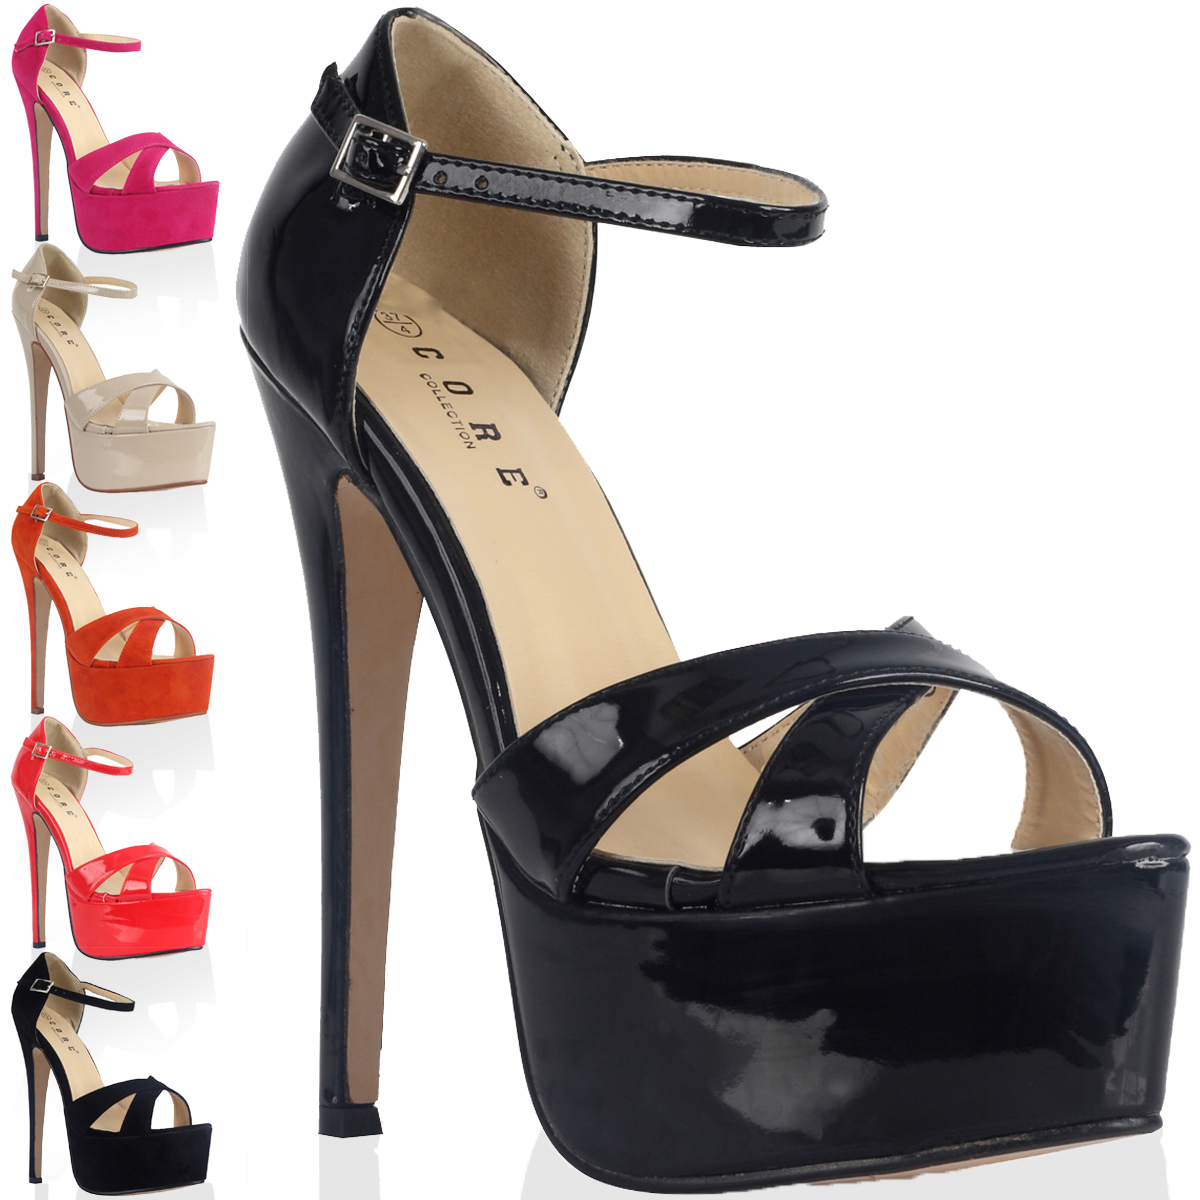 New Womens Strappy Ladies Platform Stiletto High Heel Sandals Shoes Size 4-9